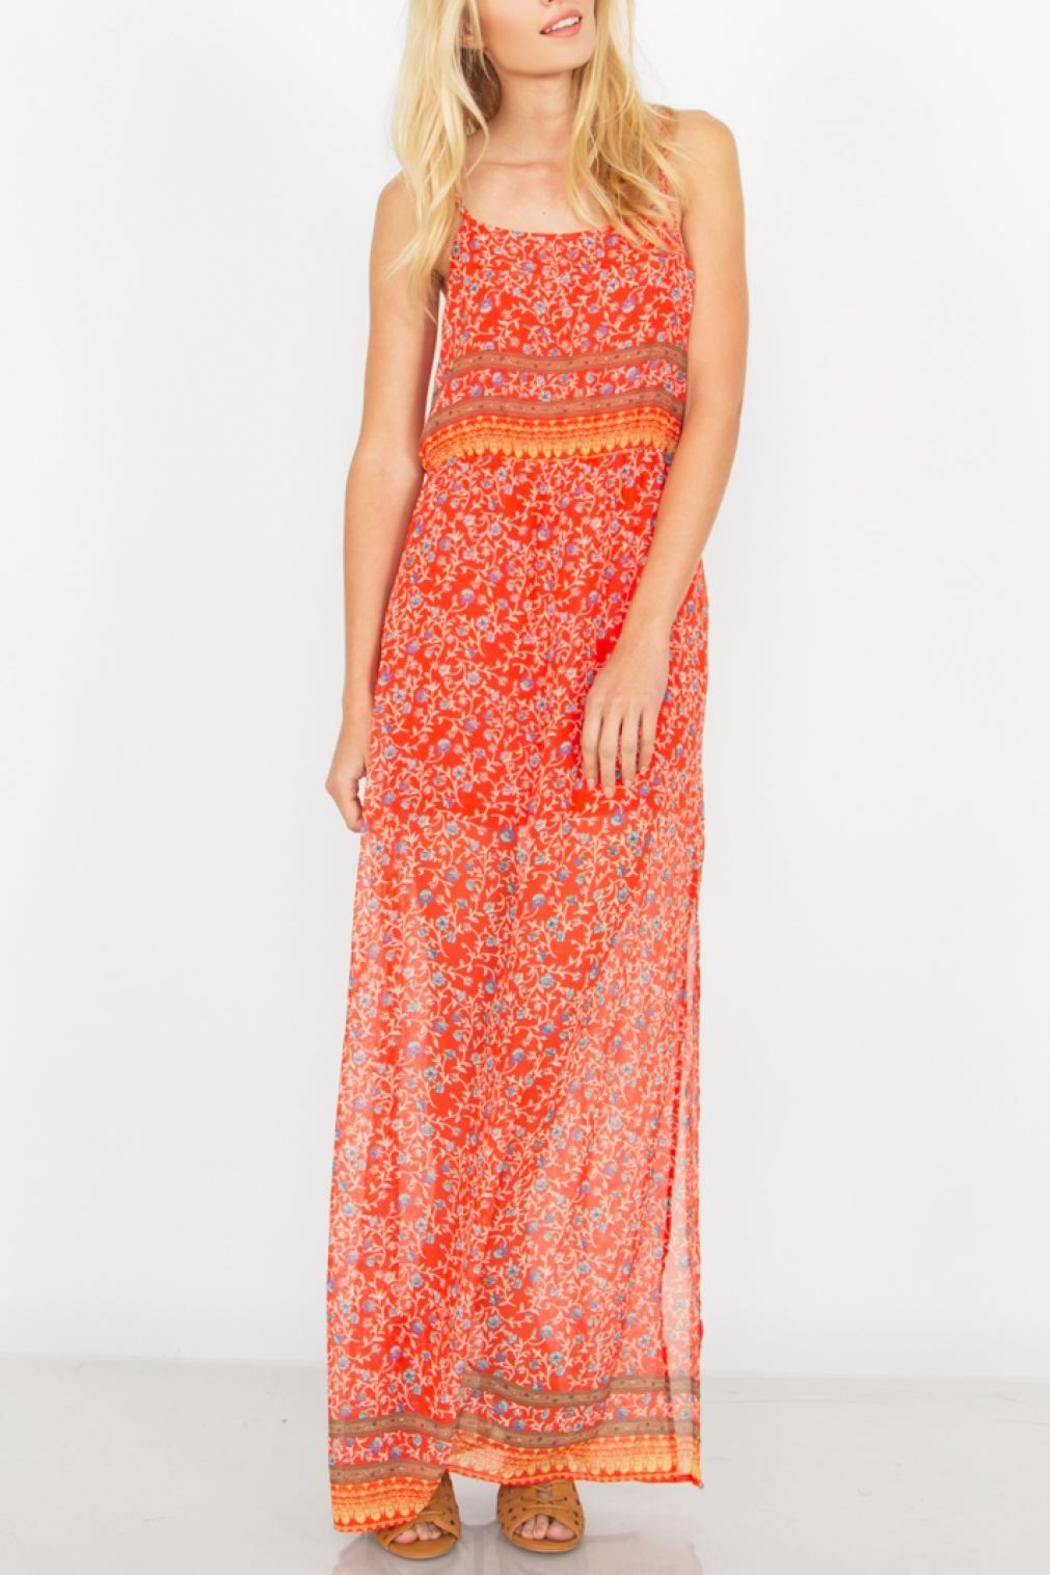 Sugarlips maxi dress